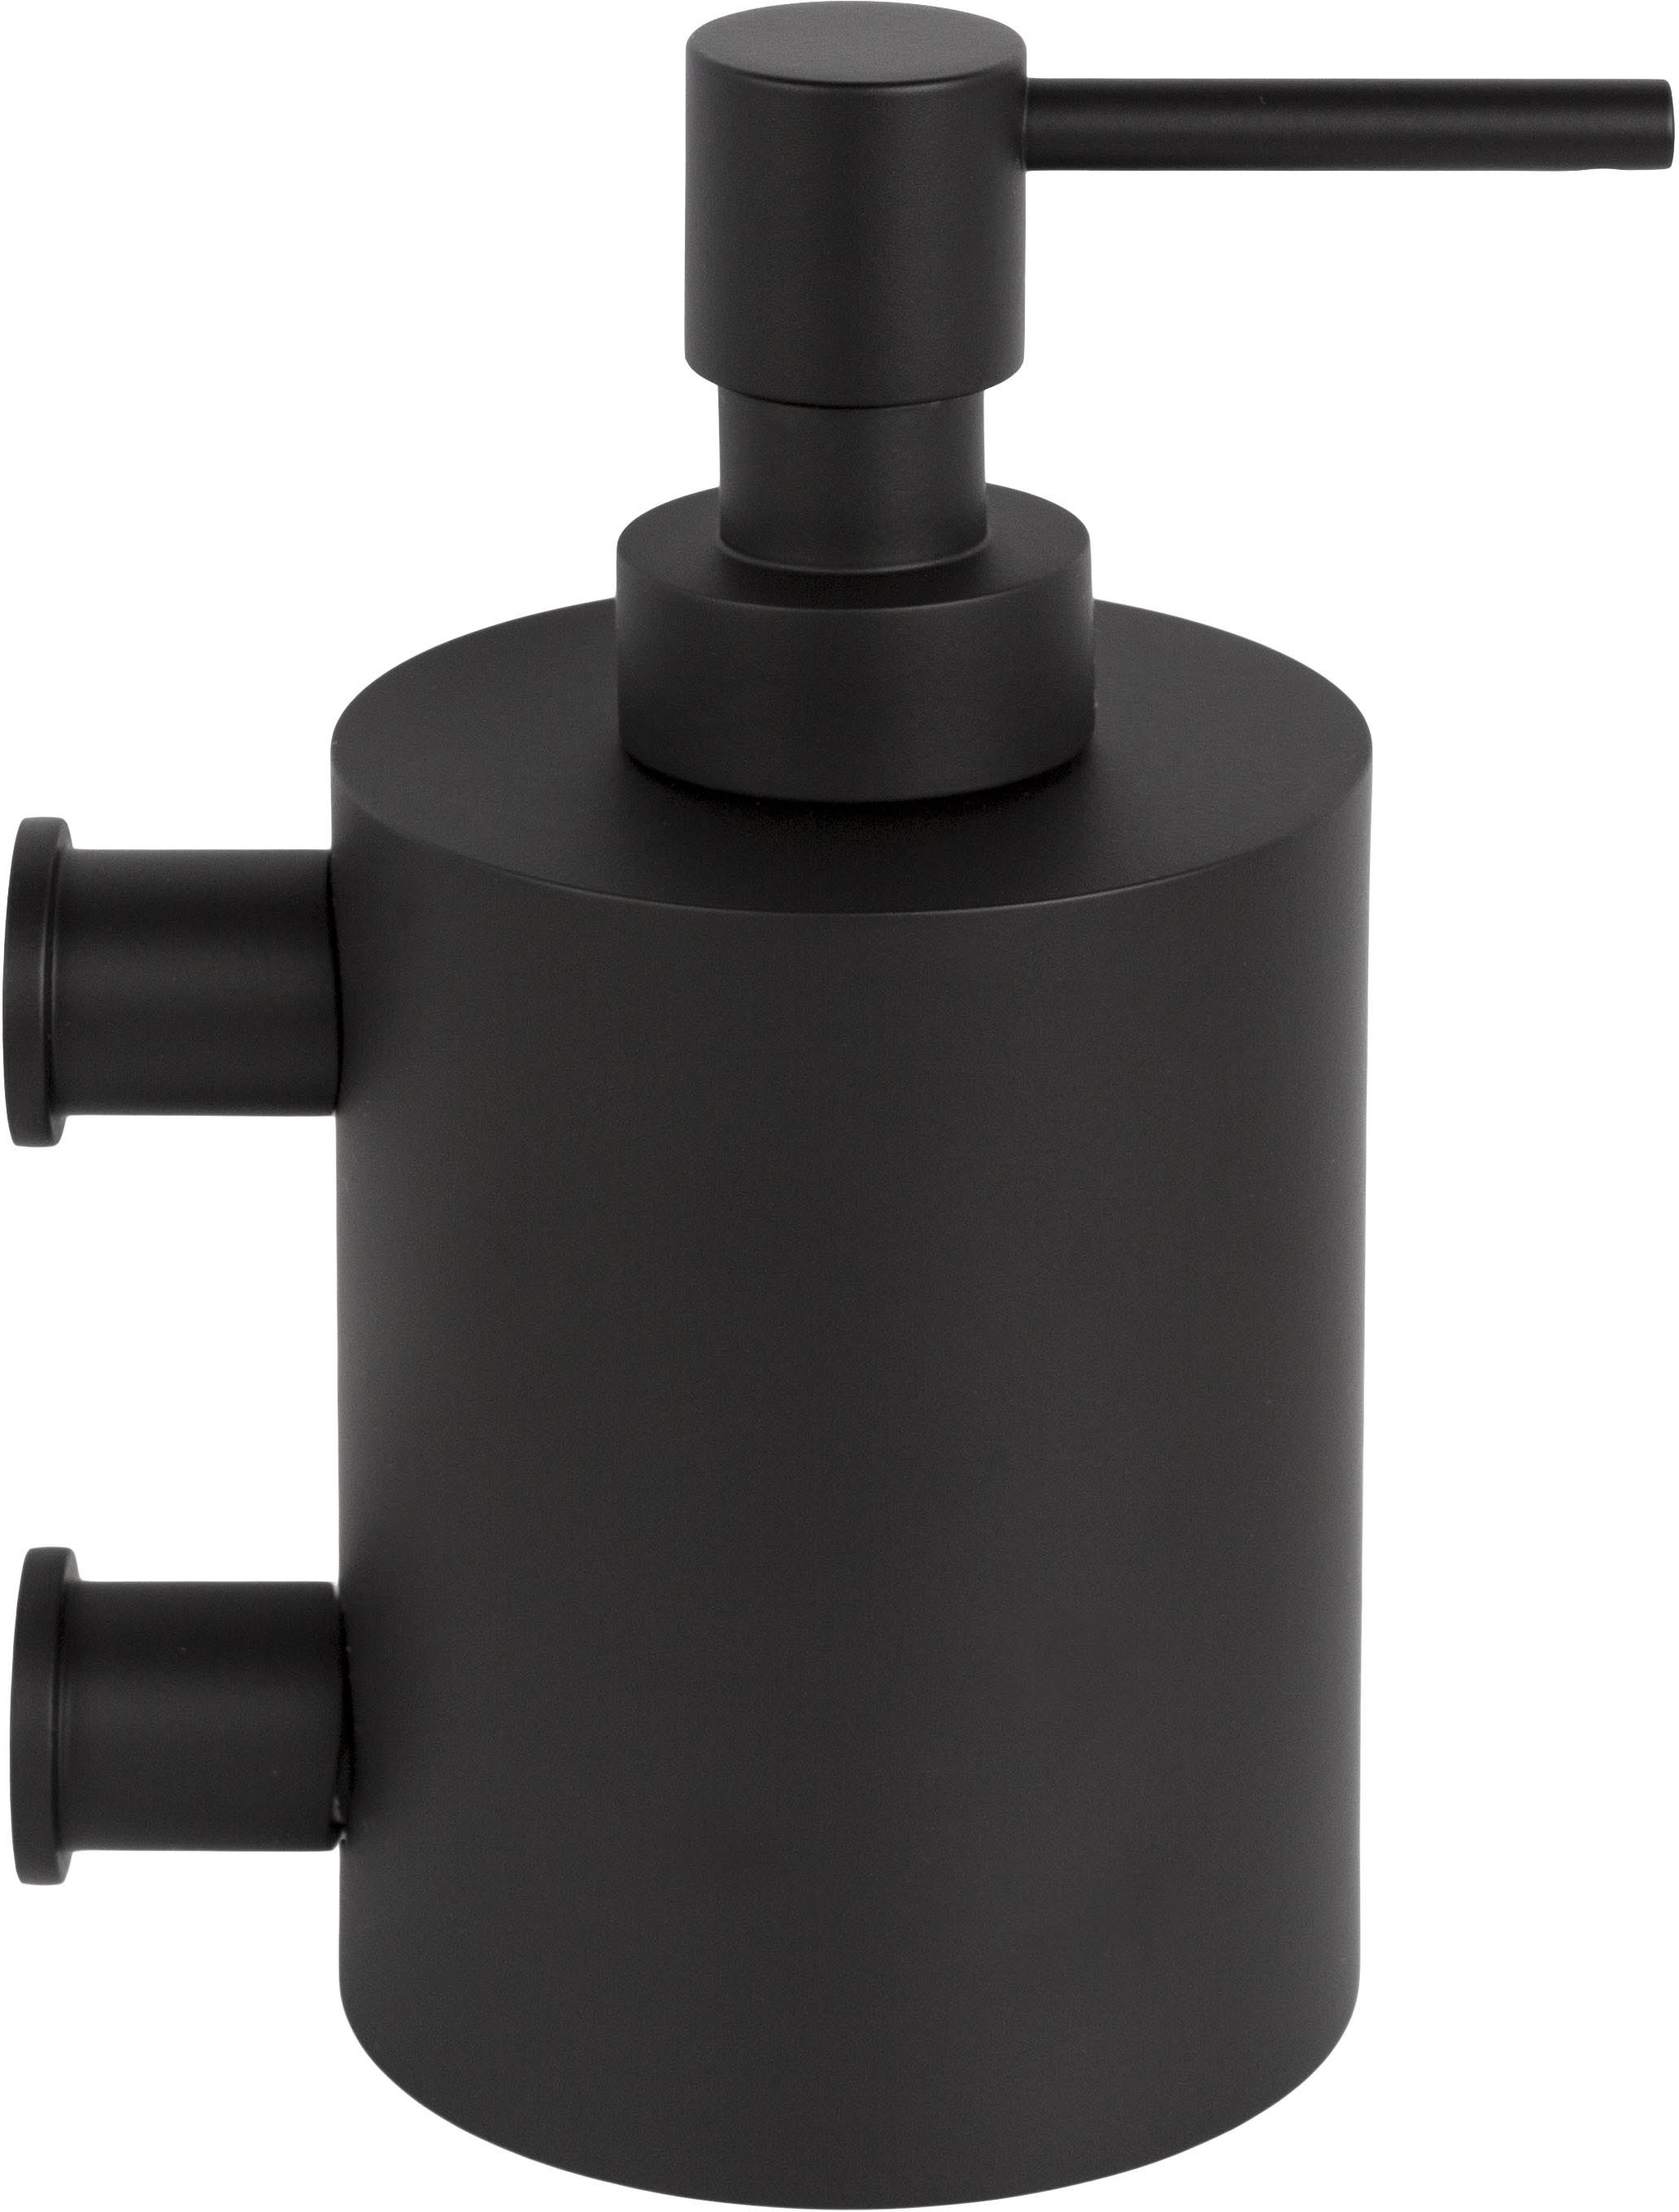 FORMANI ONE PB501 soap dispenser wall-mounted satin black